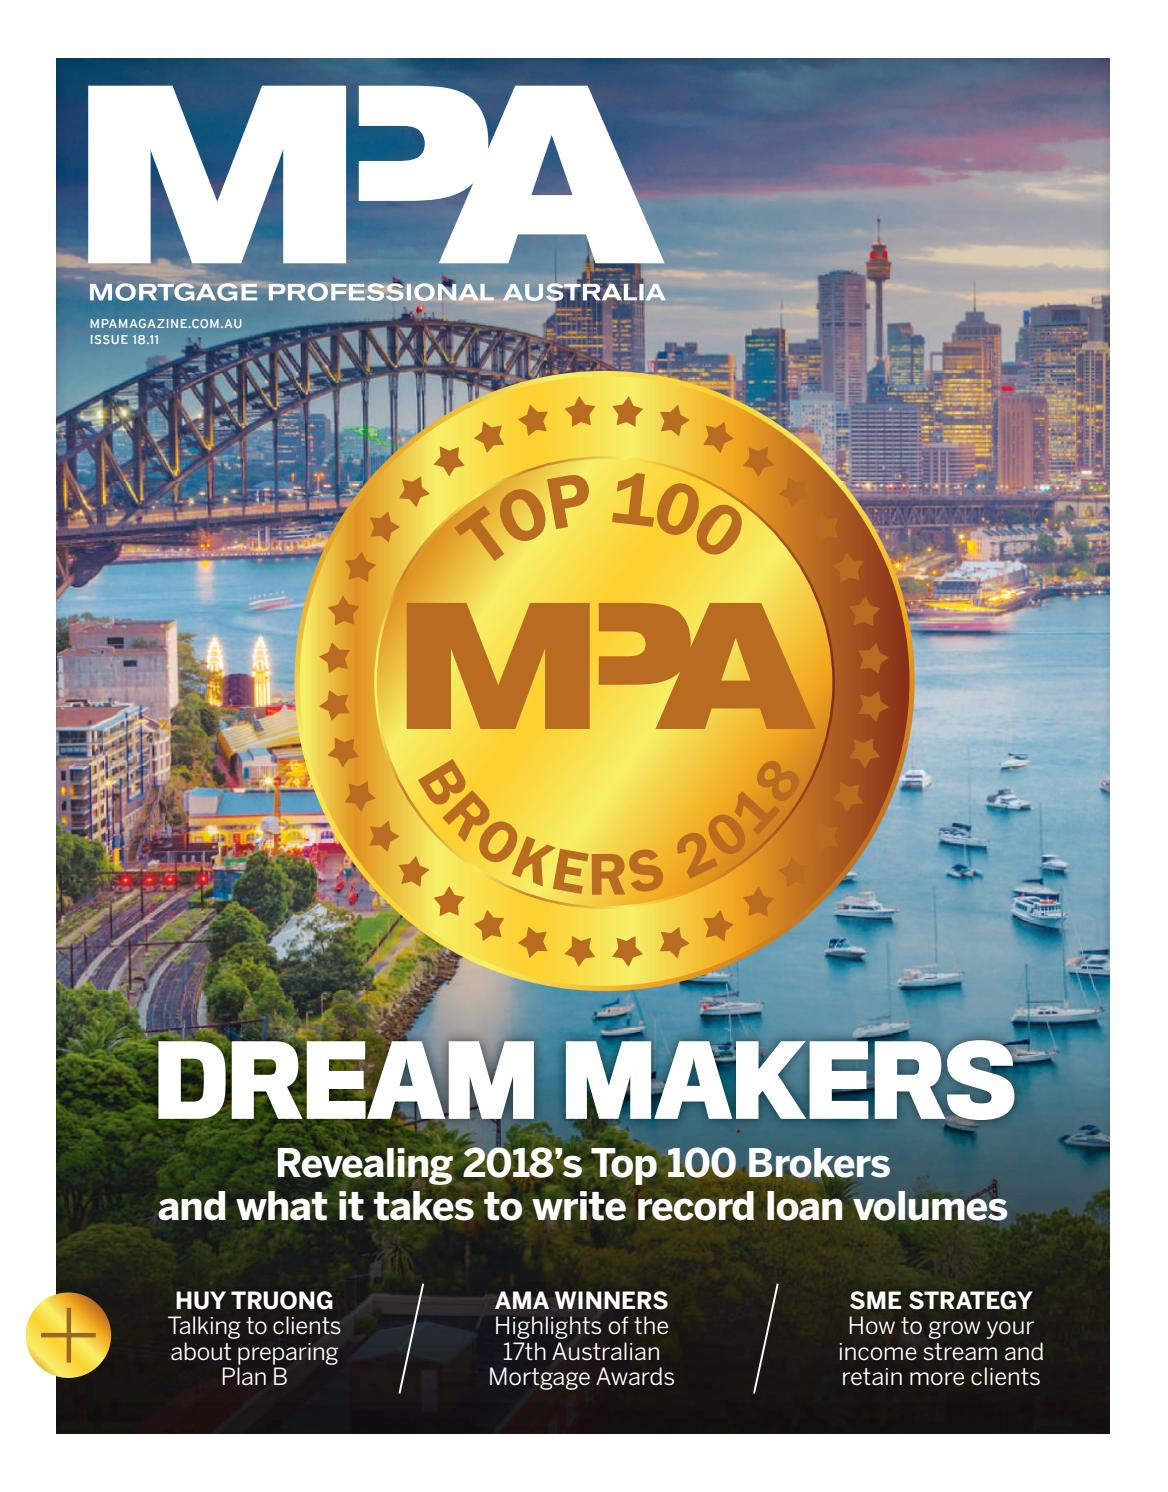 Mortgage Professional Australia issue 18 11 by Key Media - issuu